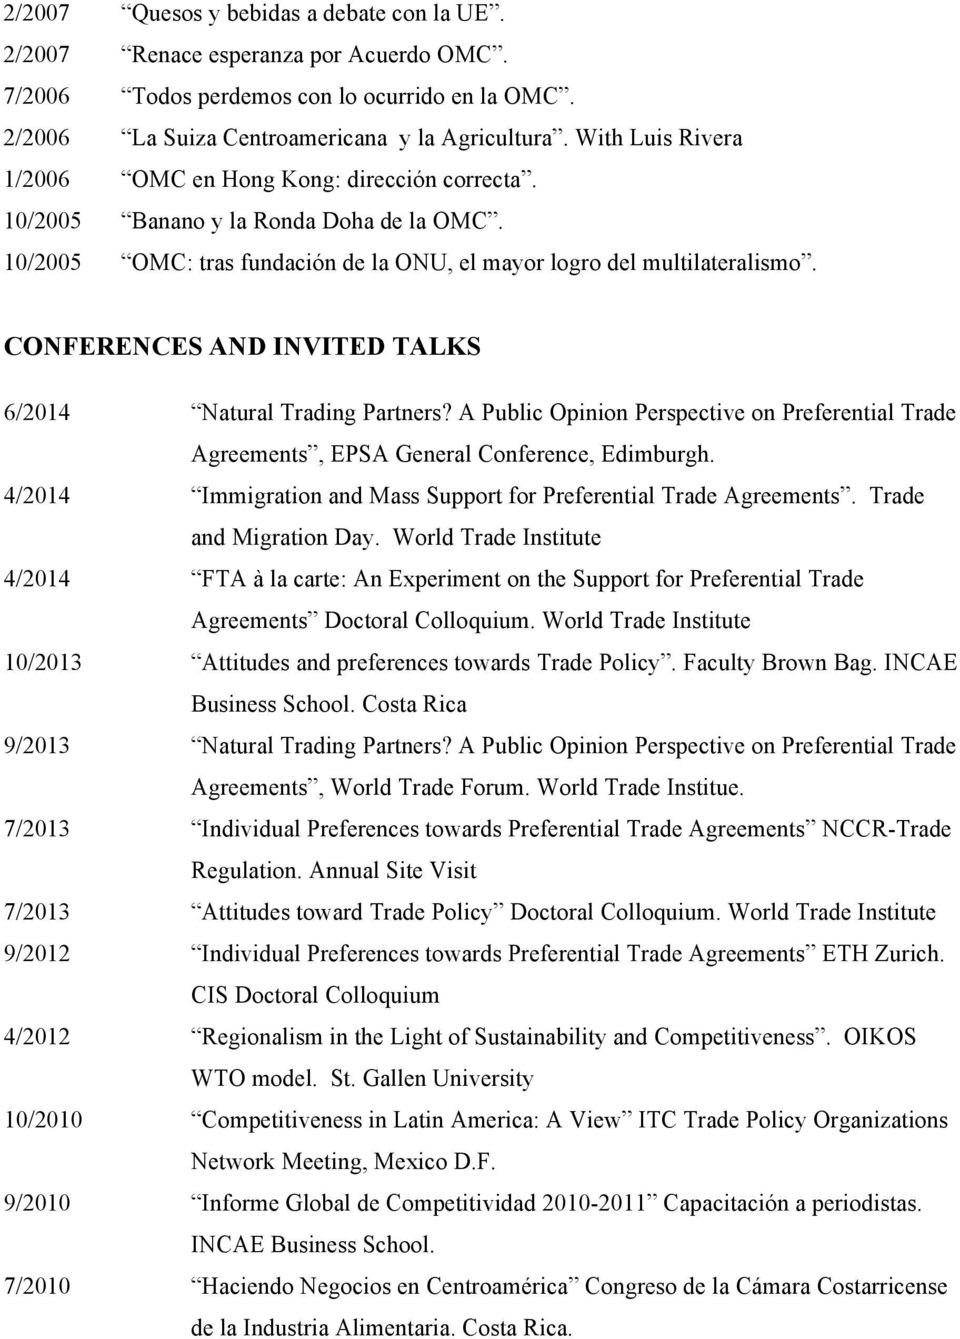 CONFERENCES AND INVITED TALKS 6/2014 Natural Trading Partners? A Public Opinion Perspective on Preferential Trade Agreements, EPSA General Conference, Edimburgh.